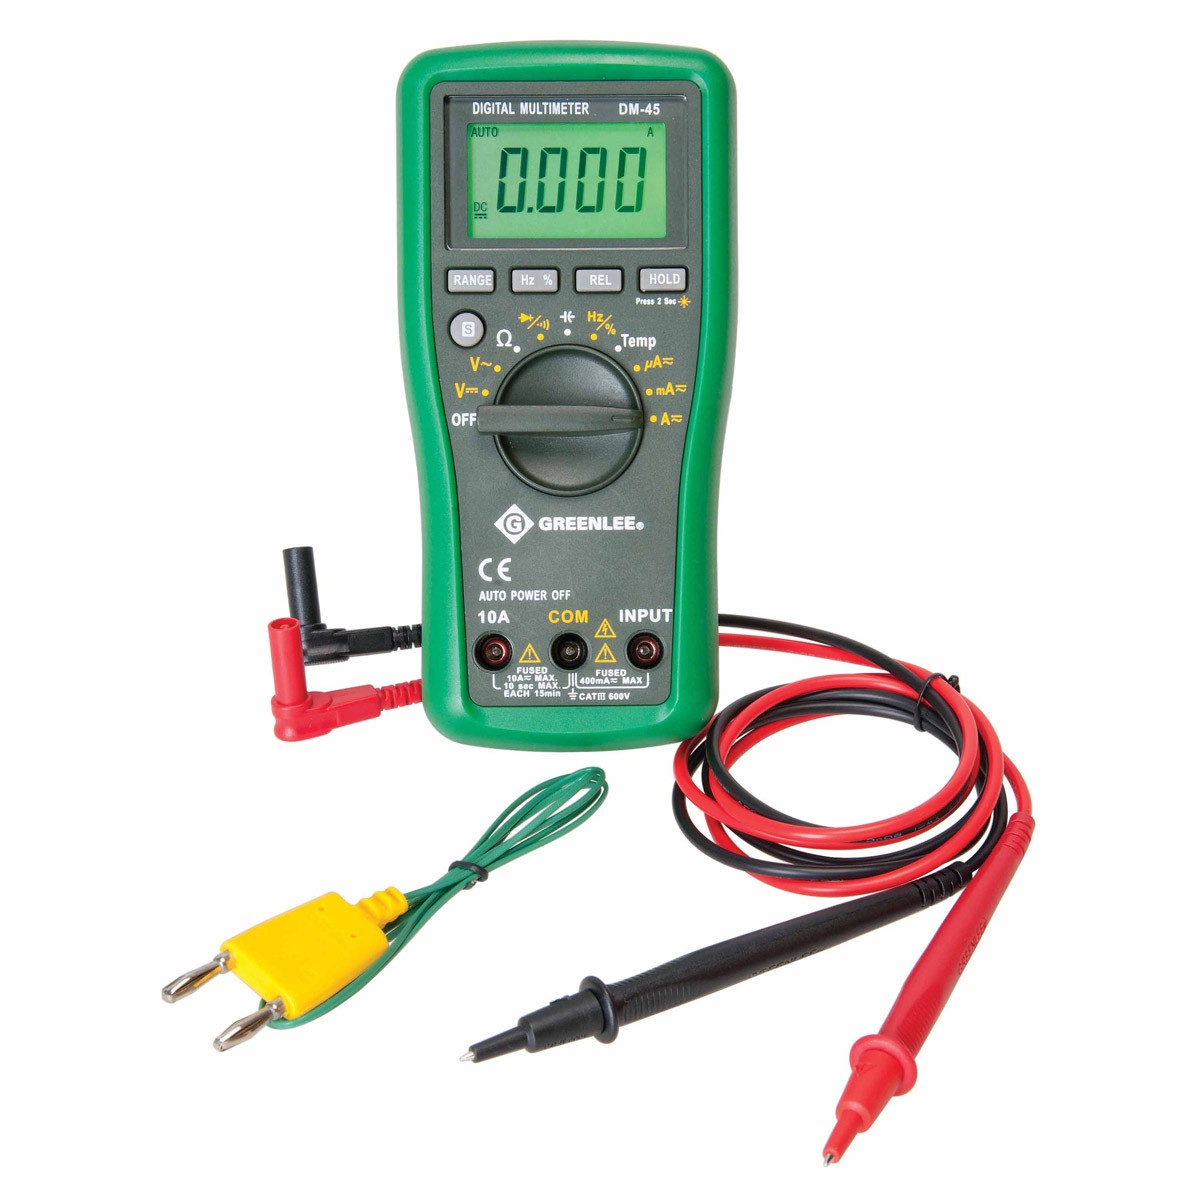 Electrical Tester Greenlee Dm 40 : Greenlee dm auto ranging multimeter